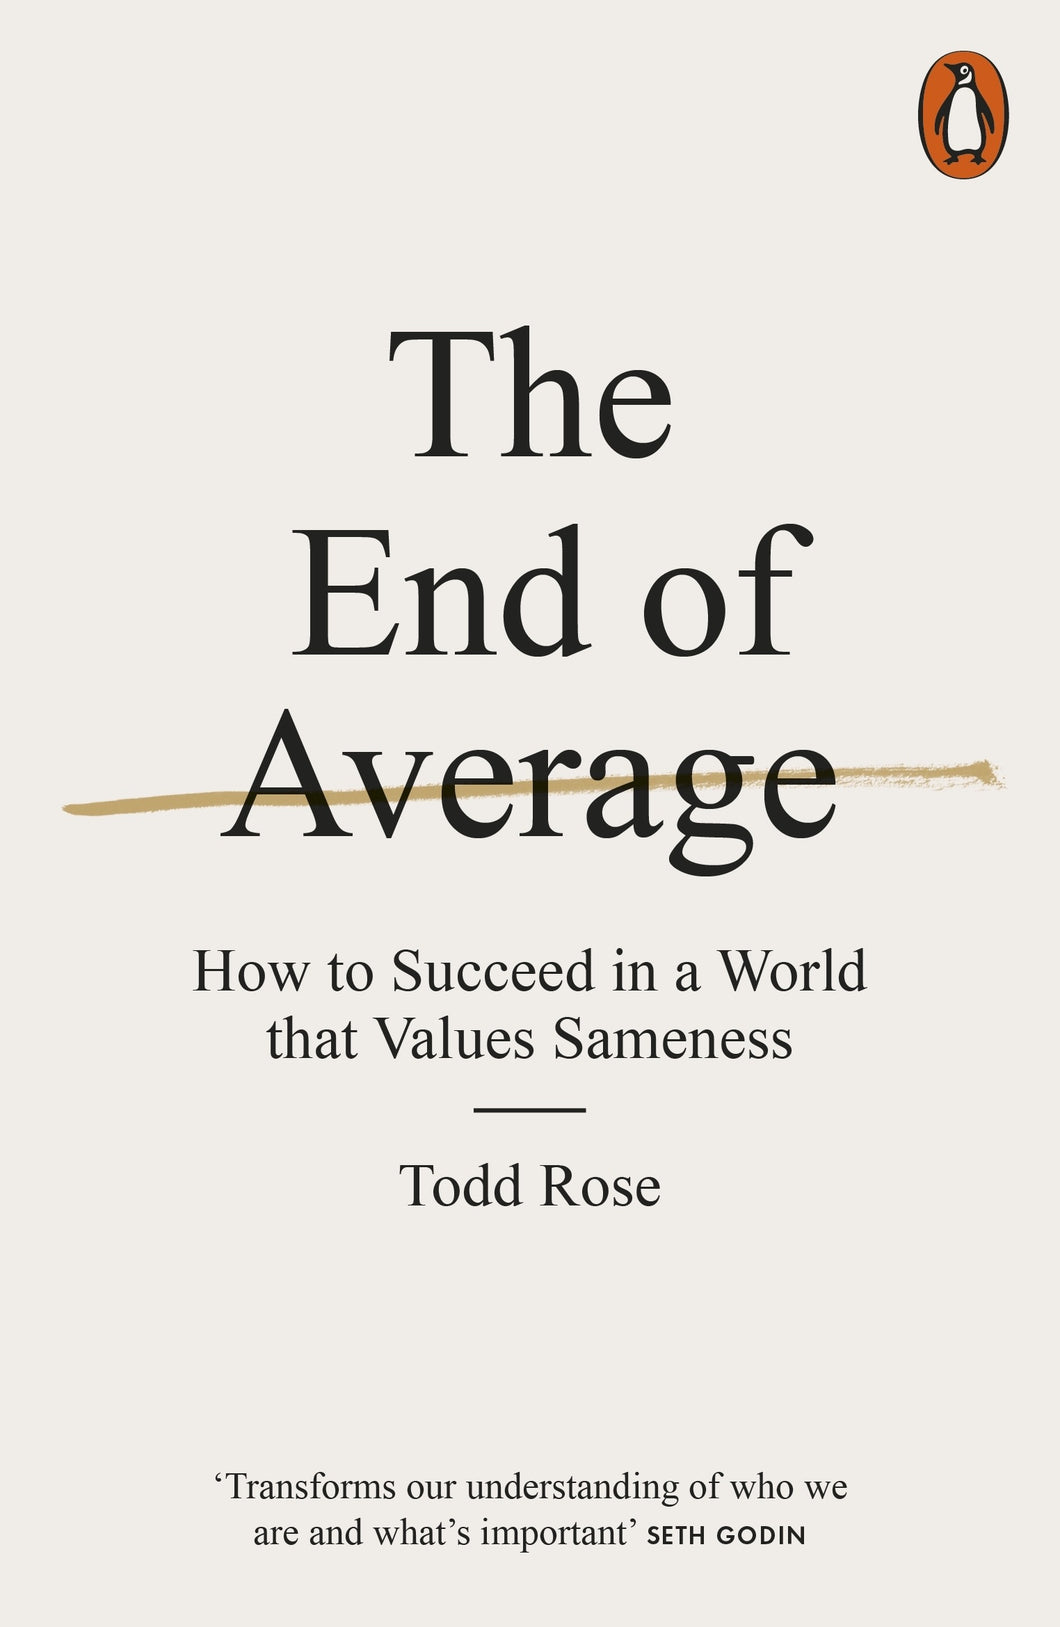 The End of Average by Todd Rose